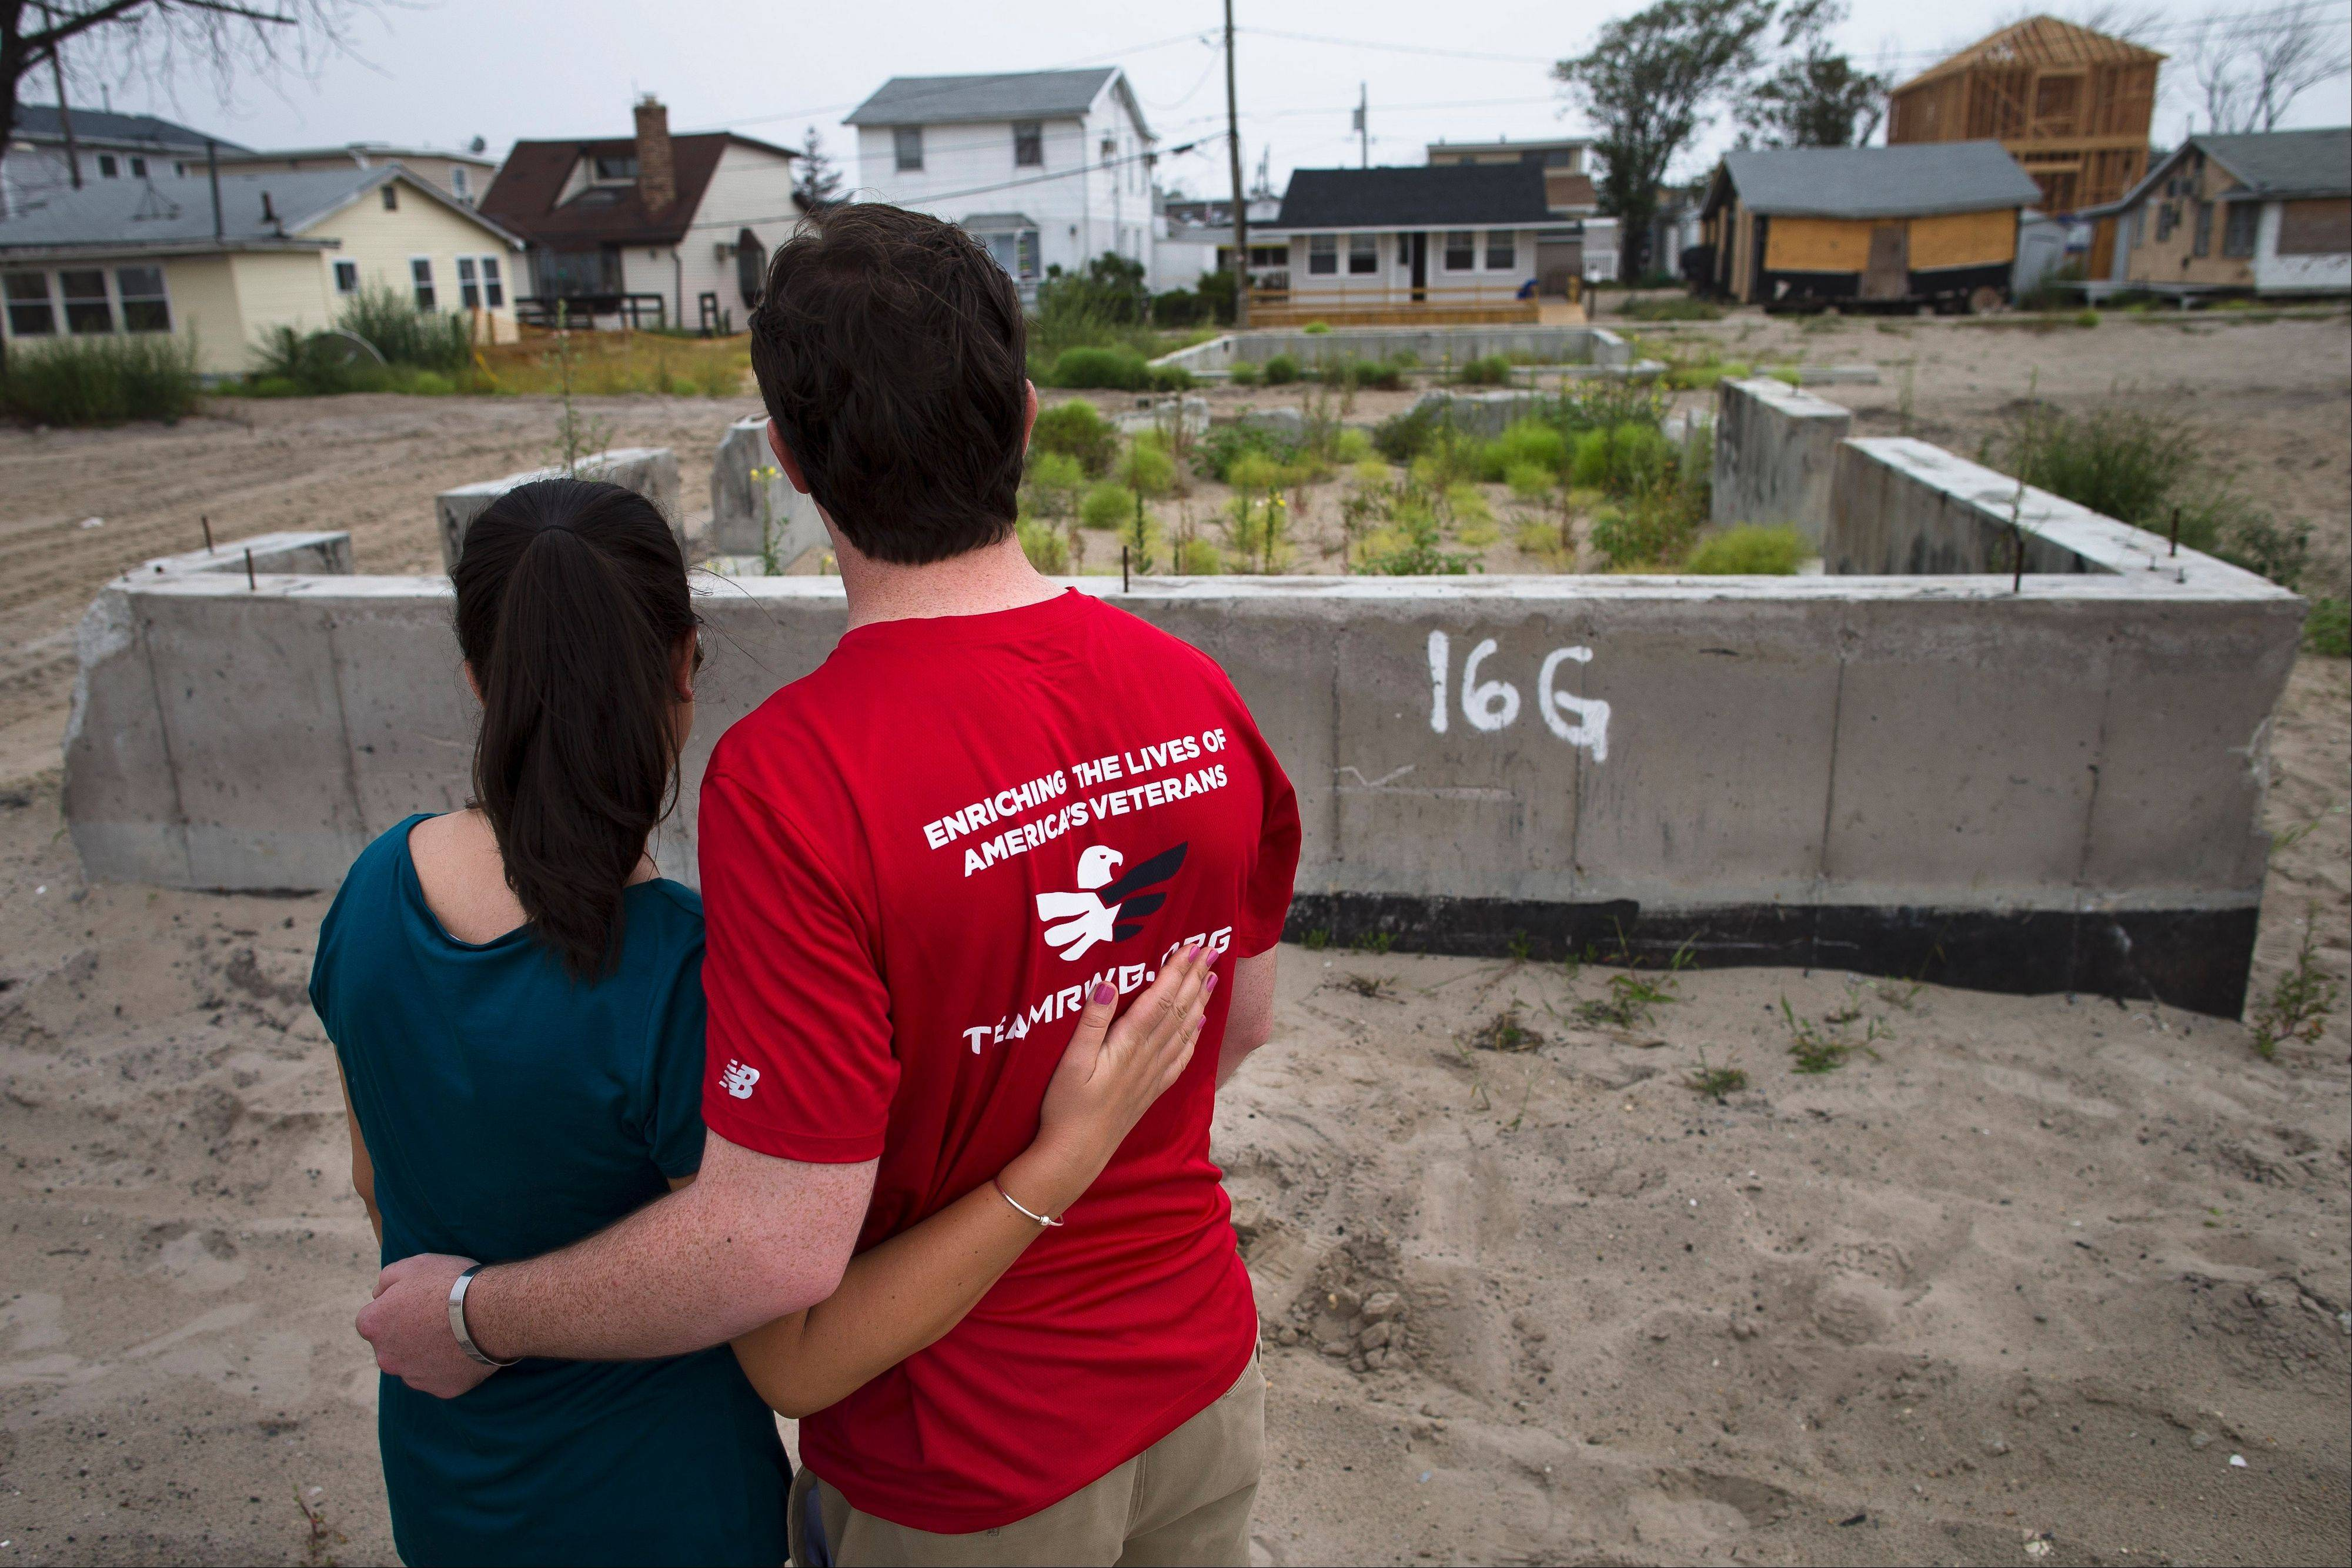 Joe Quinn and his wife, Melanie, visit the remains of his parents' home that was destroyed by Superstorm Sandy in the Breezy Point neighborhood of New York's Queens borough. Joe Quinn, whose older brother Jimmy was killed on the 104th floor of the World Trade Center's Tower One on Sept. 11, 2001, lost treasured pictures and handwritten letters from his brother that were among 12 boxes of mementos that were lost in the house when Superstorm Sandy struck the Queens community last October.